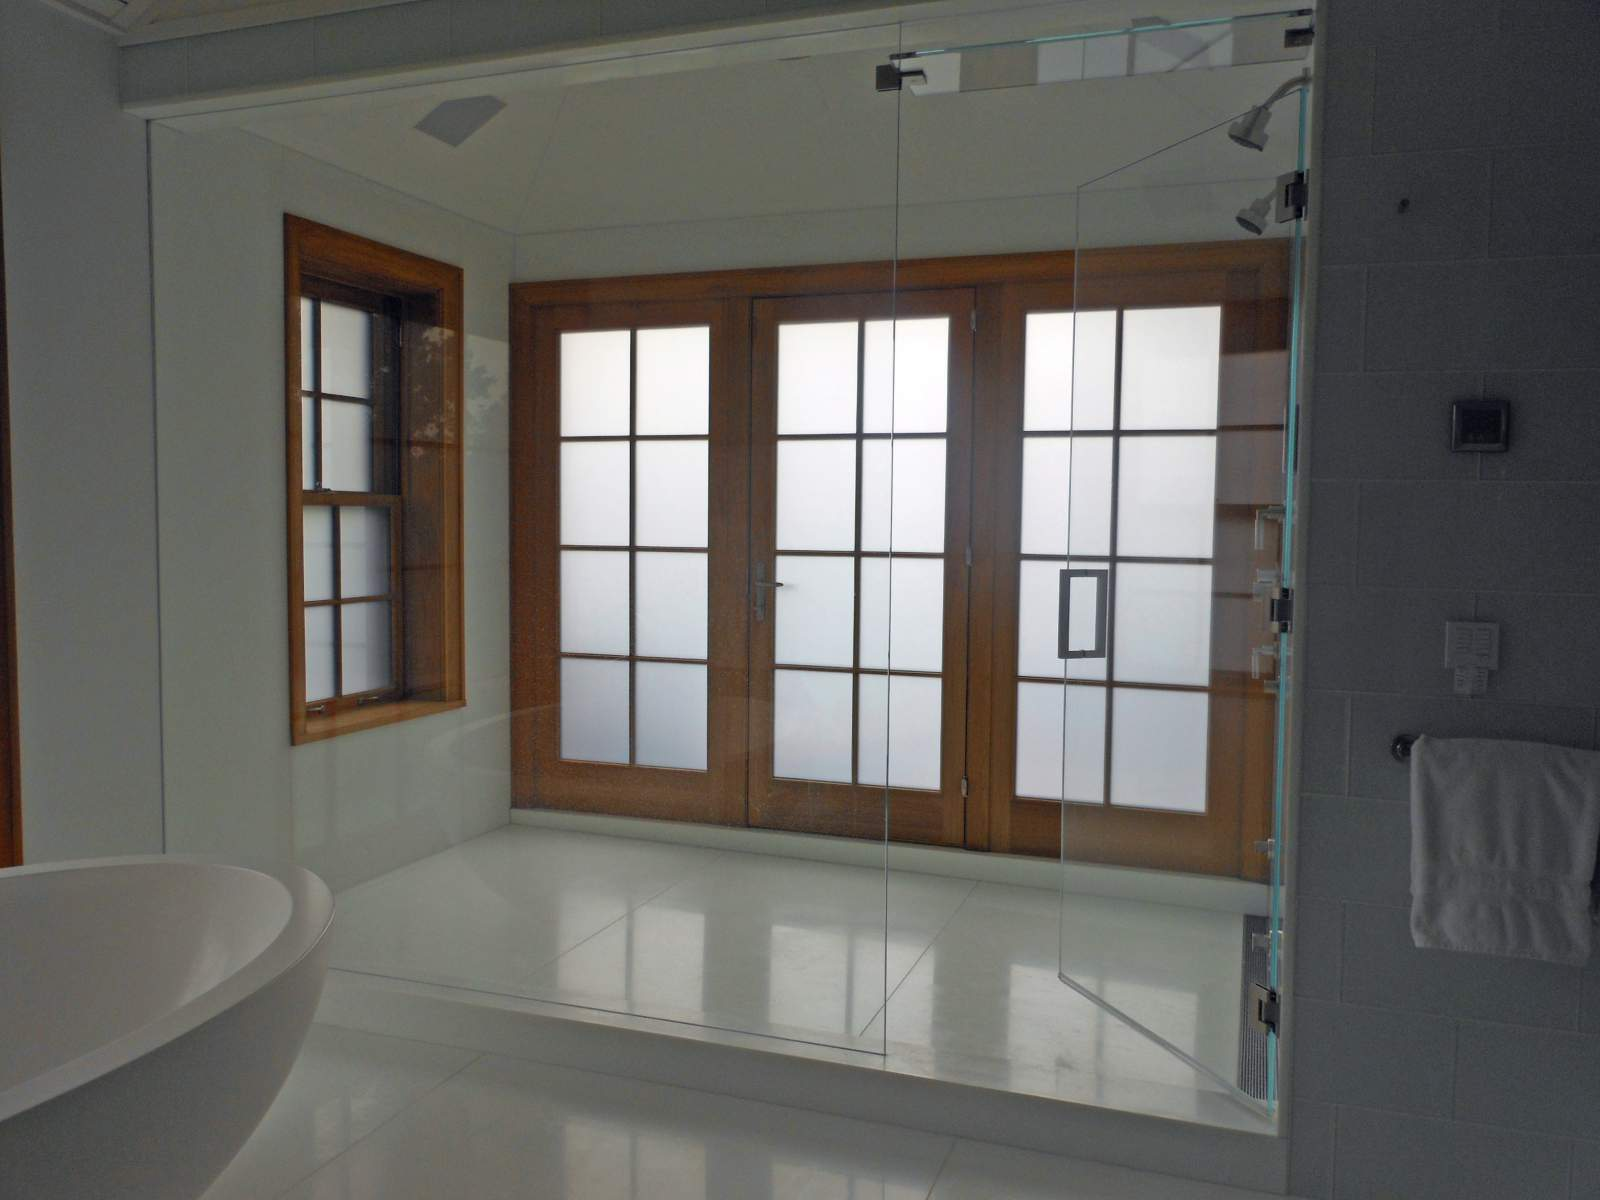 50. ELECTRIC I-GLASS BATHROOM